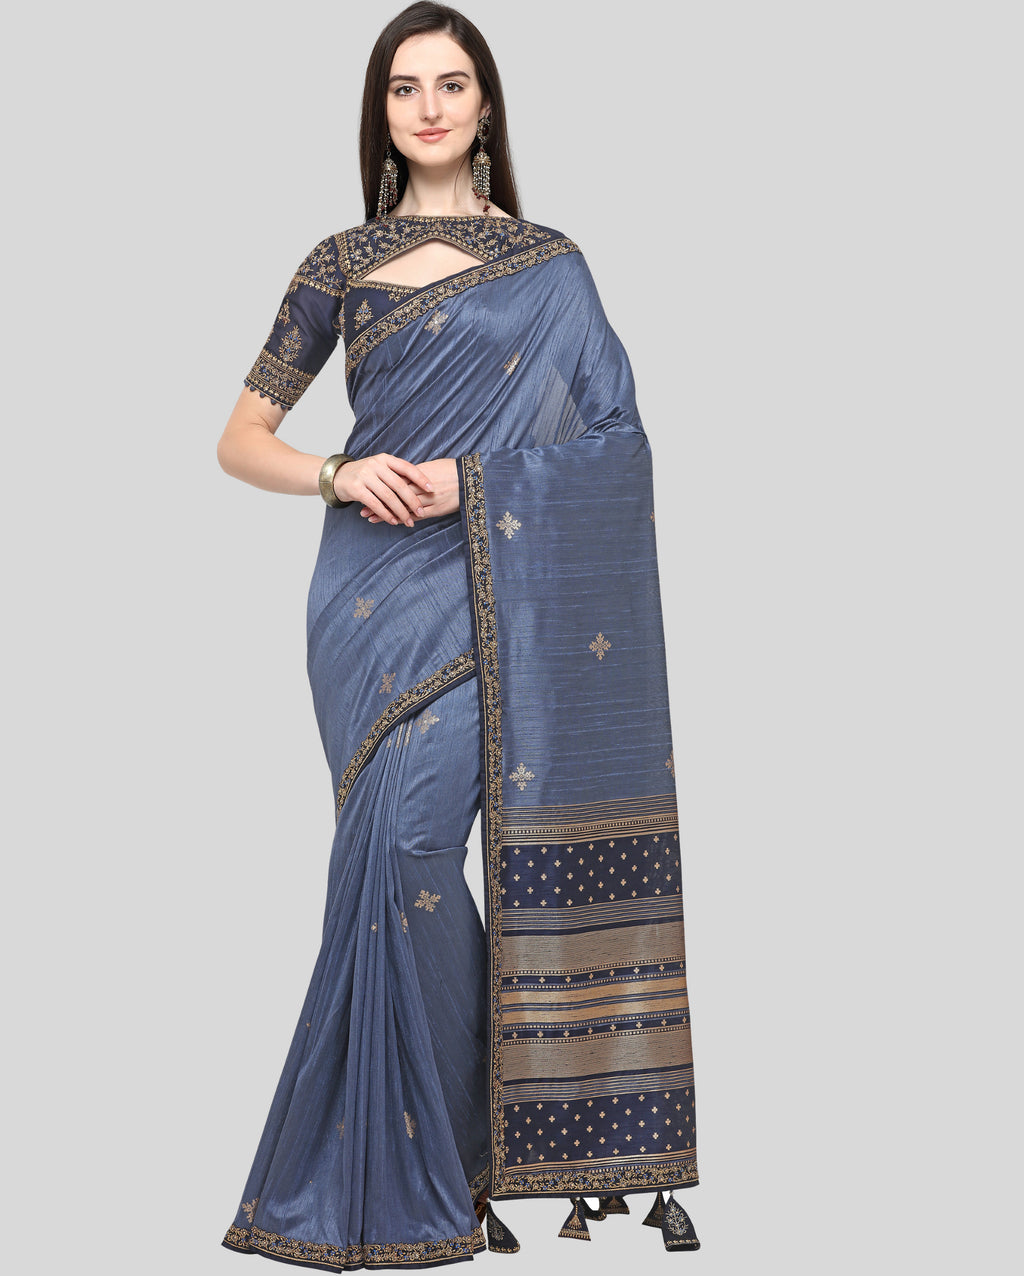 Grey Color Weaving Raw Silk Wedding Function Sarees NYF-7989